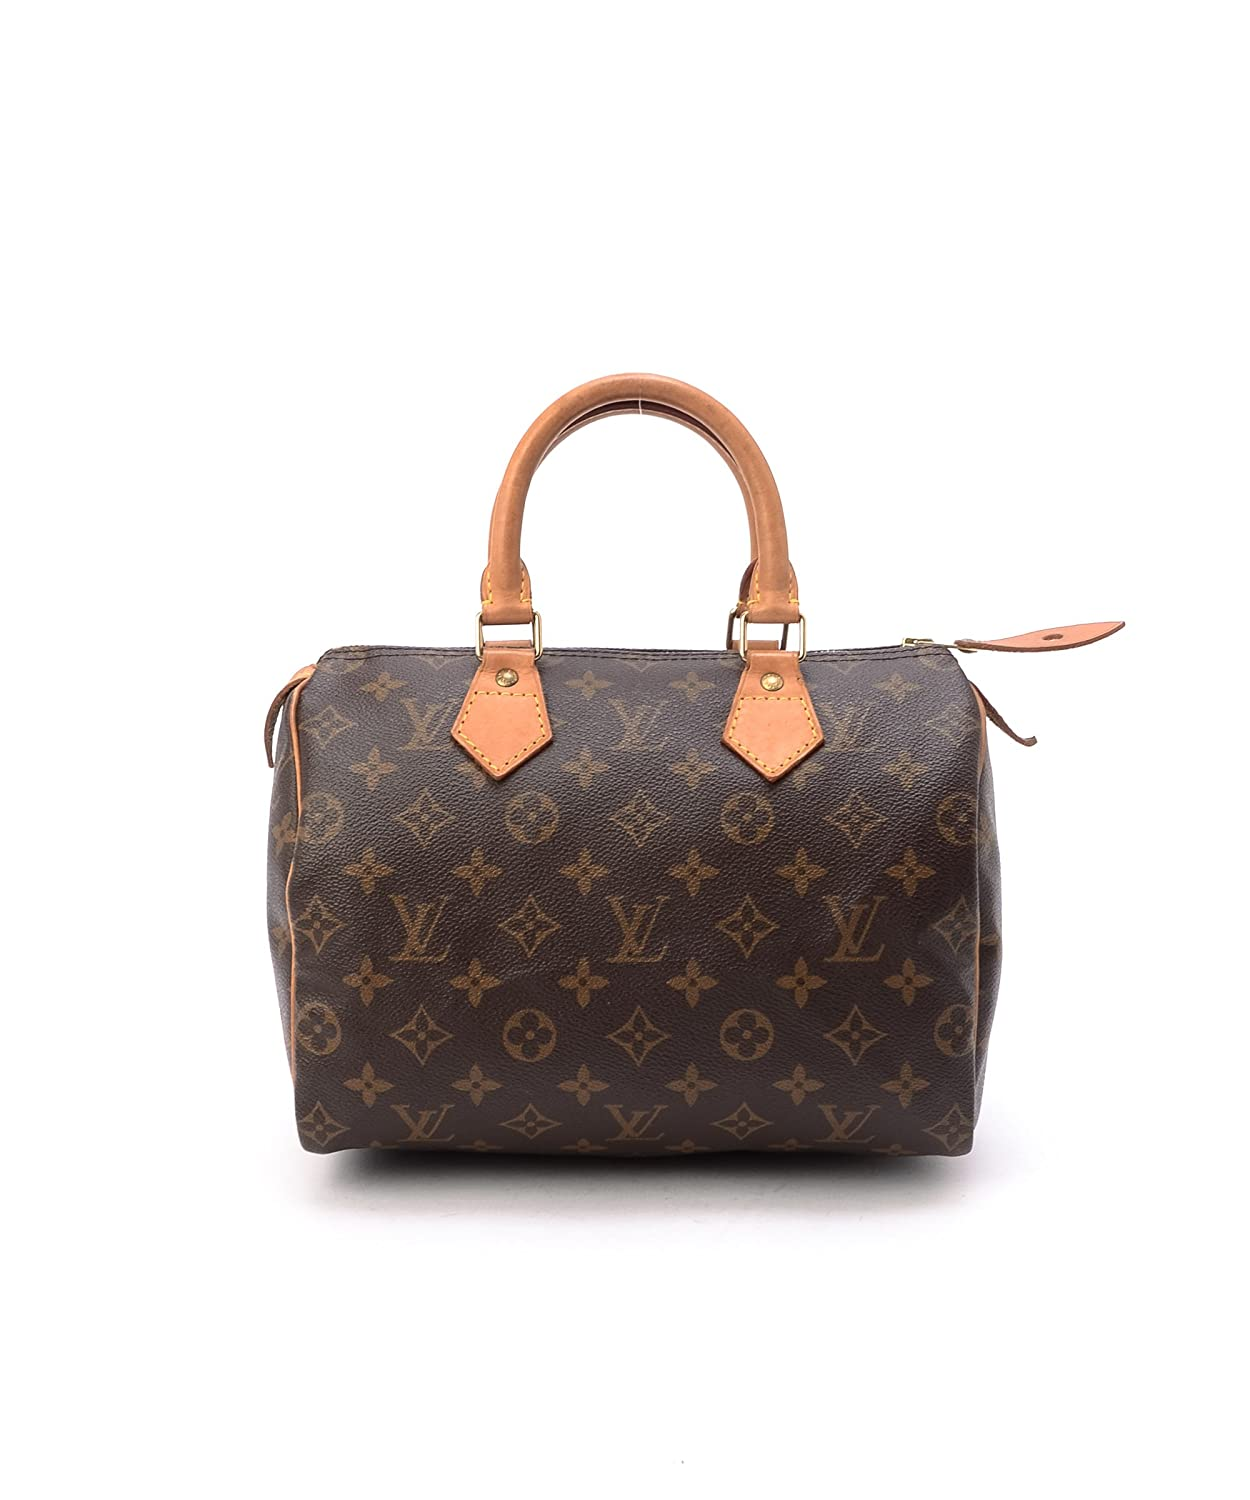 56ca29f6e7 Women's Authentic Louis Vuitton Speedy 25 Brown Monogram Travel Bag